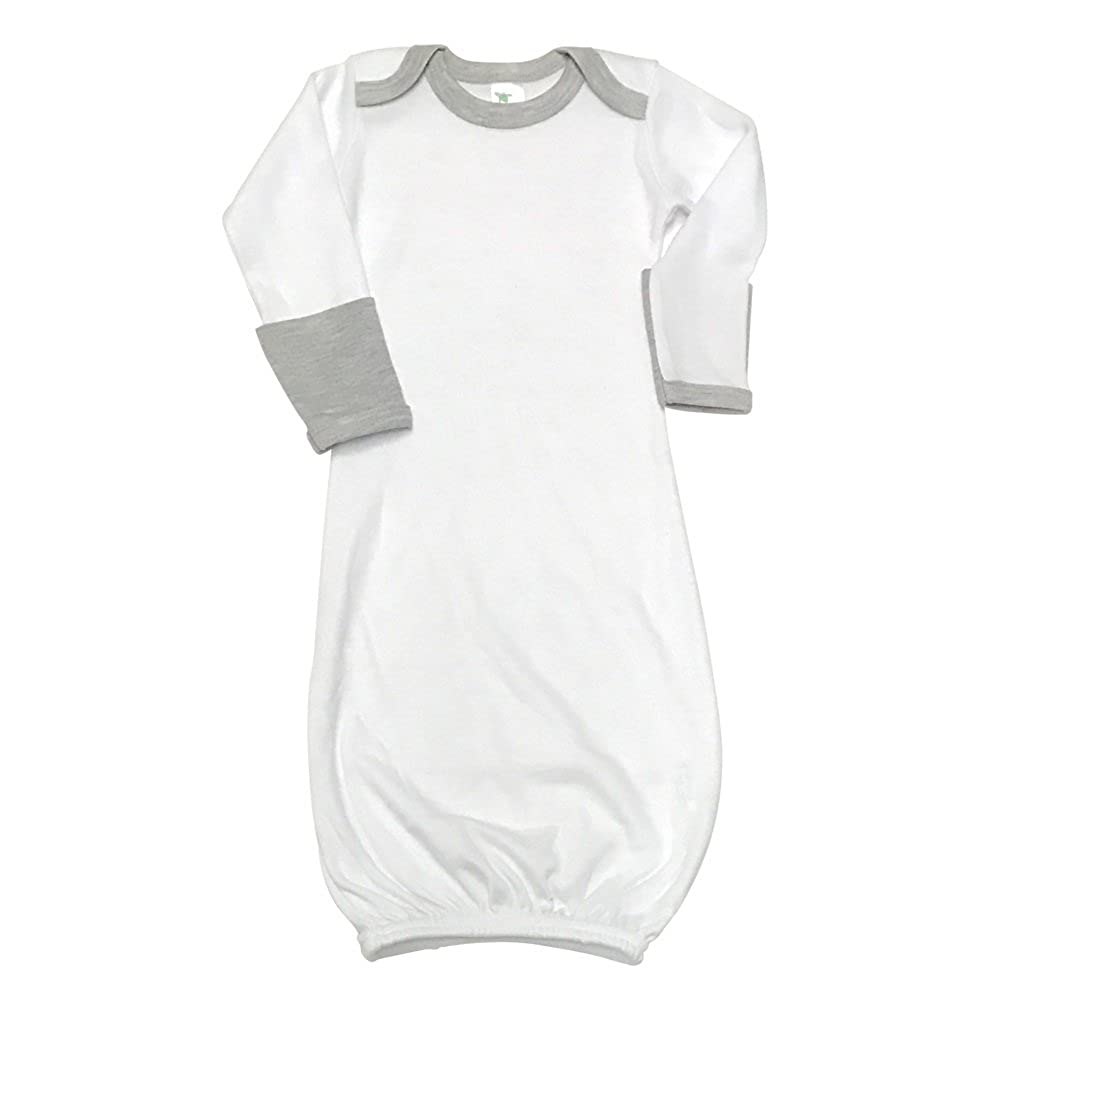 Laughing Giraffe Baby Long Sleeve Ringer Gown with Fold Over Mittens White//Heather